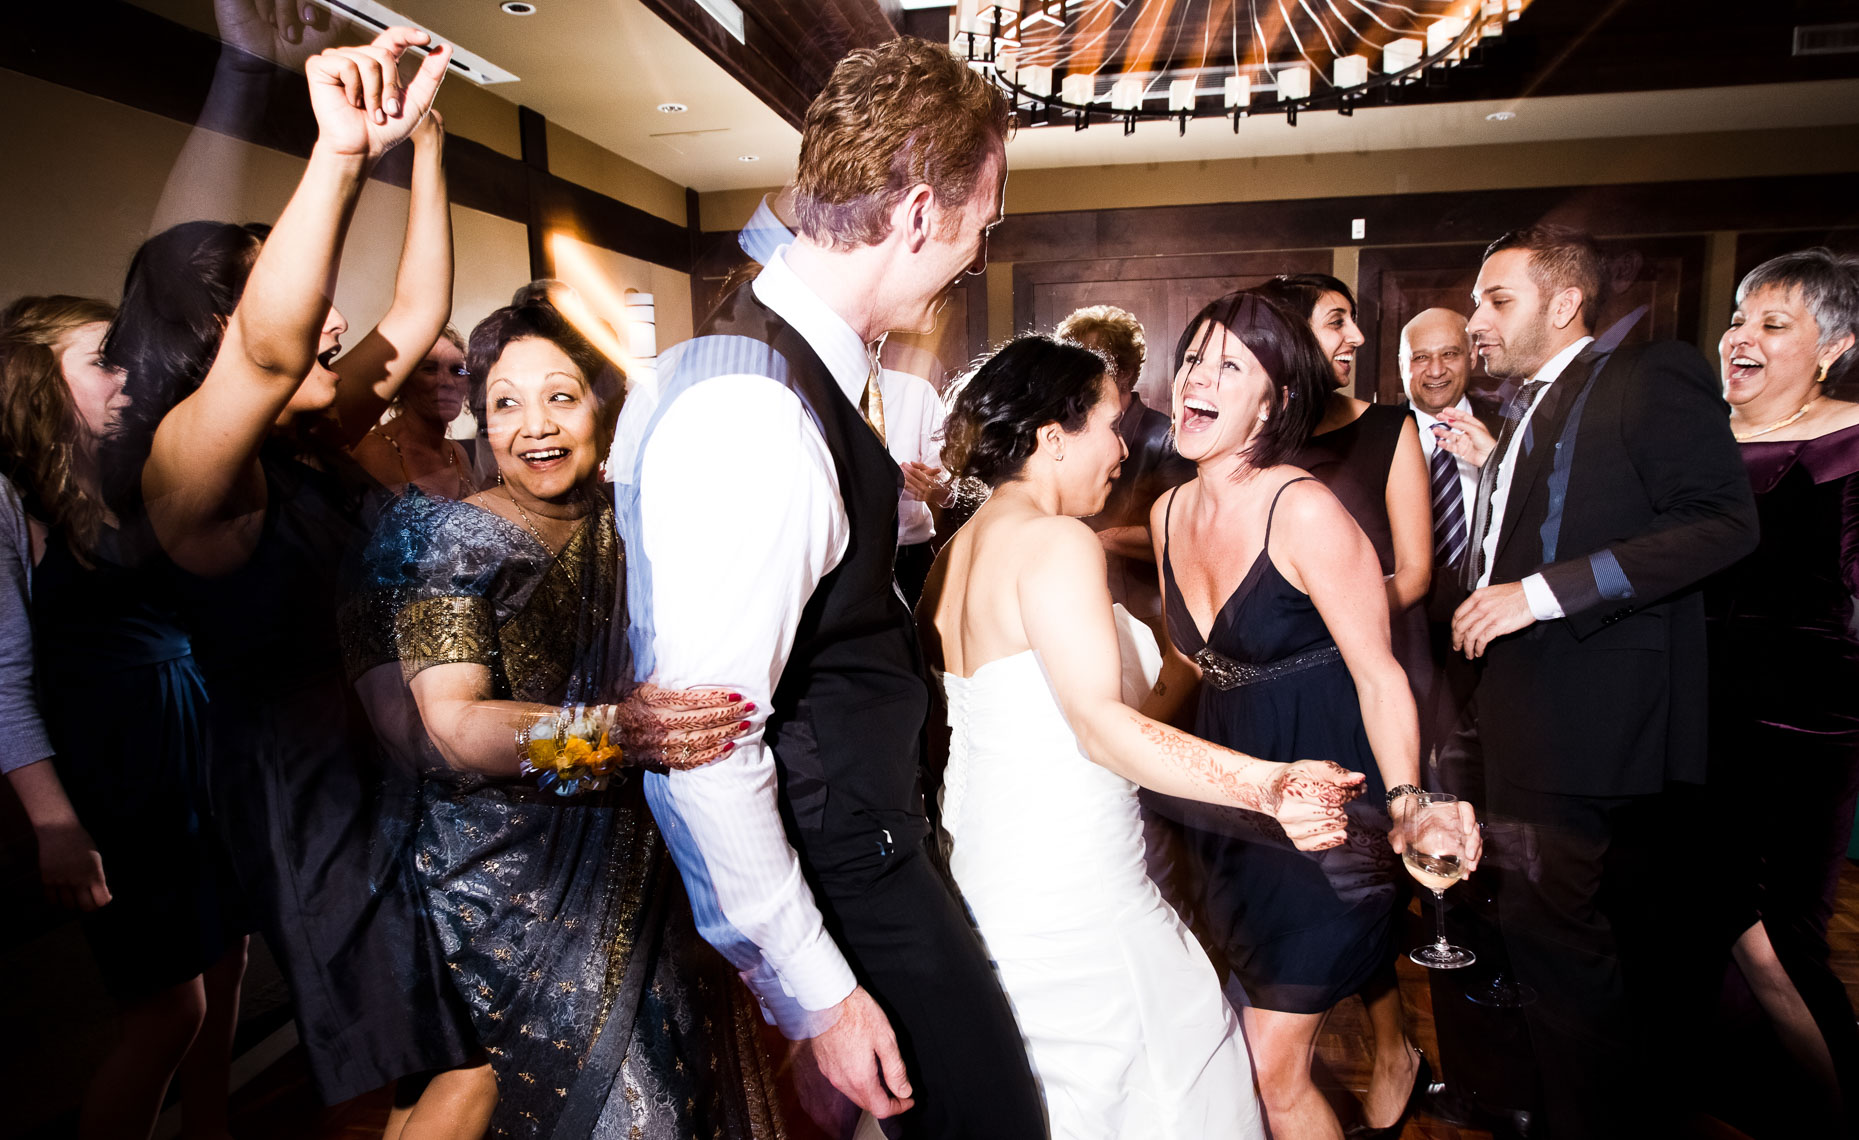 Dance party at a wedding in Whistler, BC